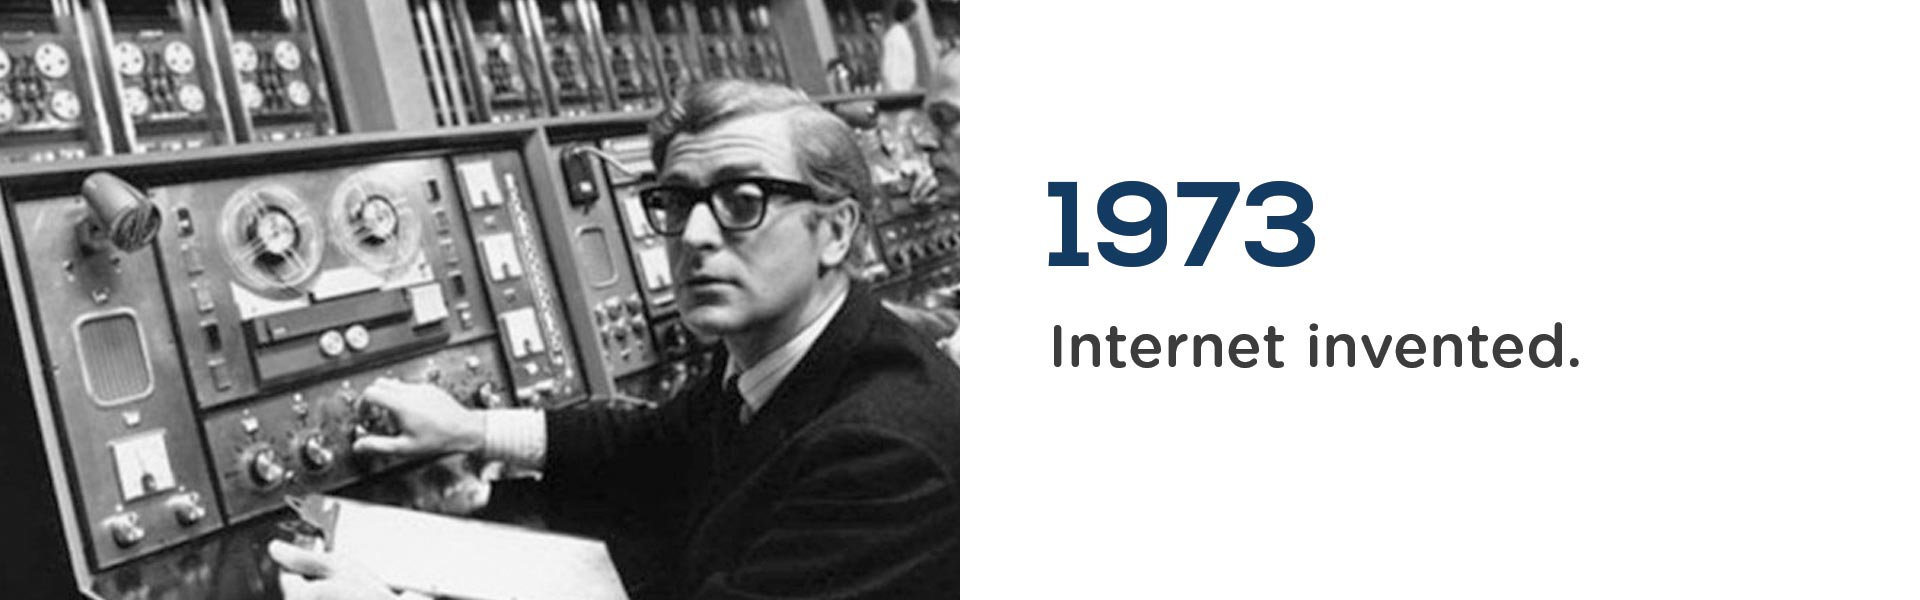 The internet was invented in 1973.Wrigley Claydon Solicitors, Trusted for 200 years